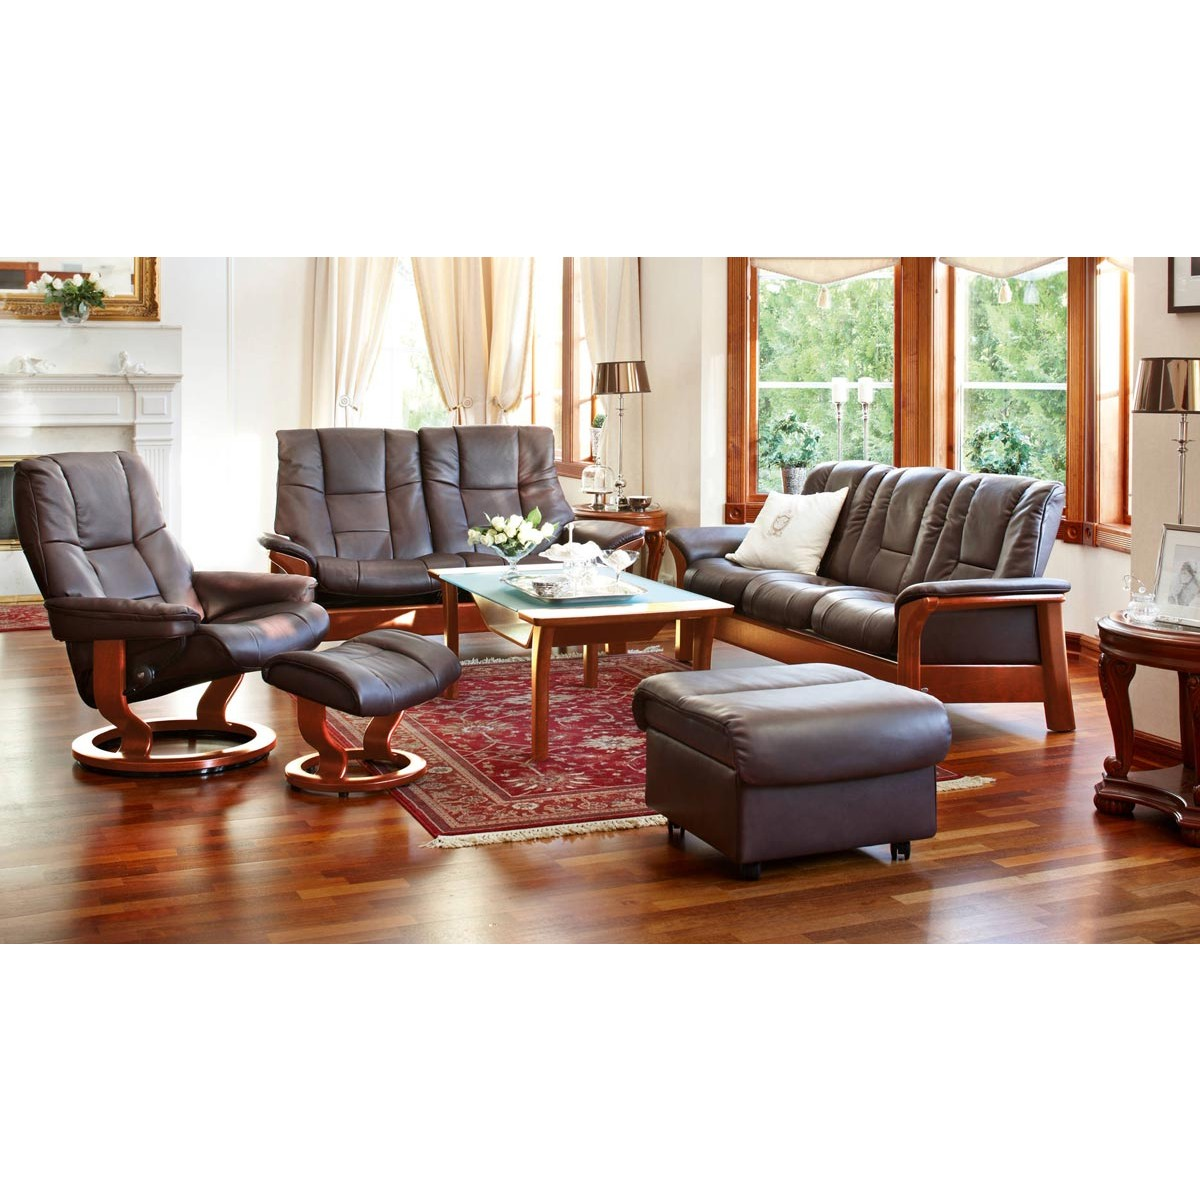 Ekornes Stressless Buckingham Sofa Buckingham Sofa Stressless Buckingham 3 Seat Low Back Sofa